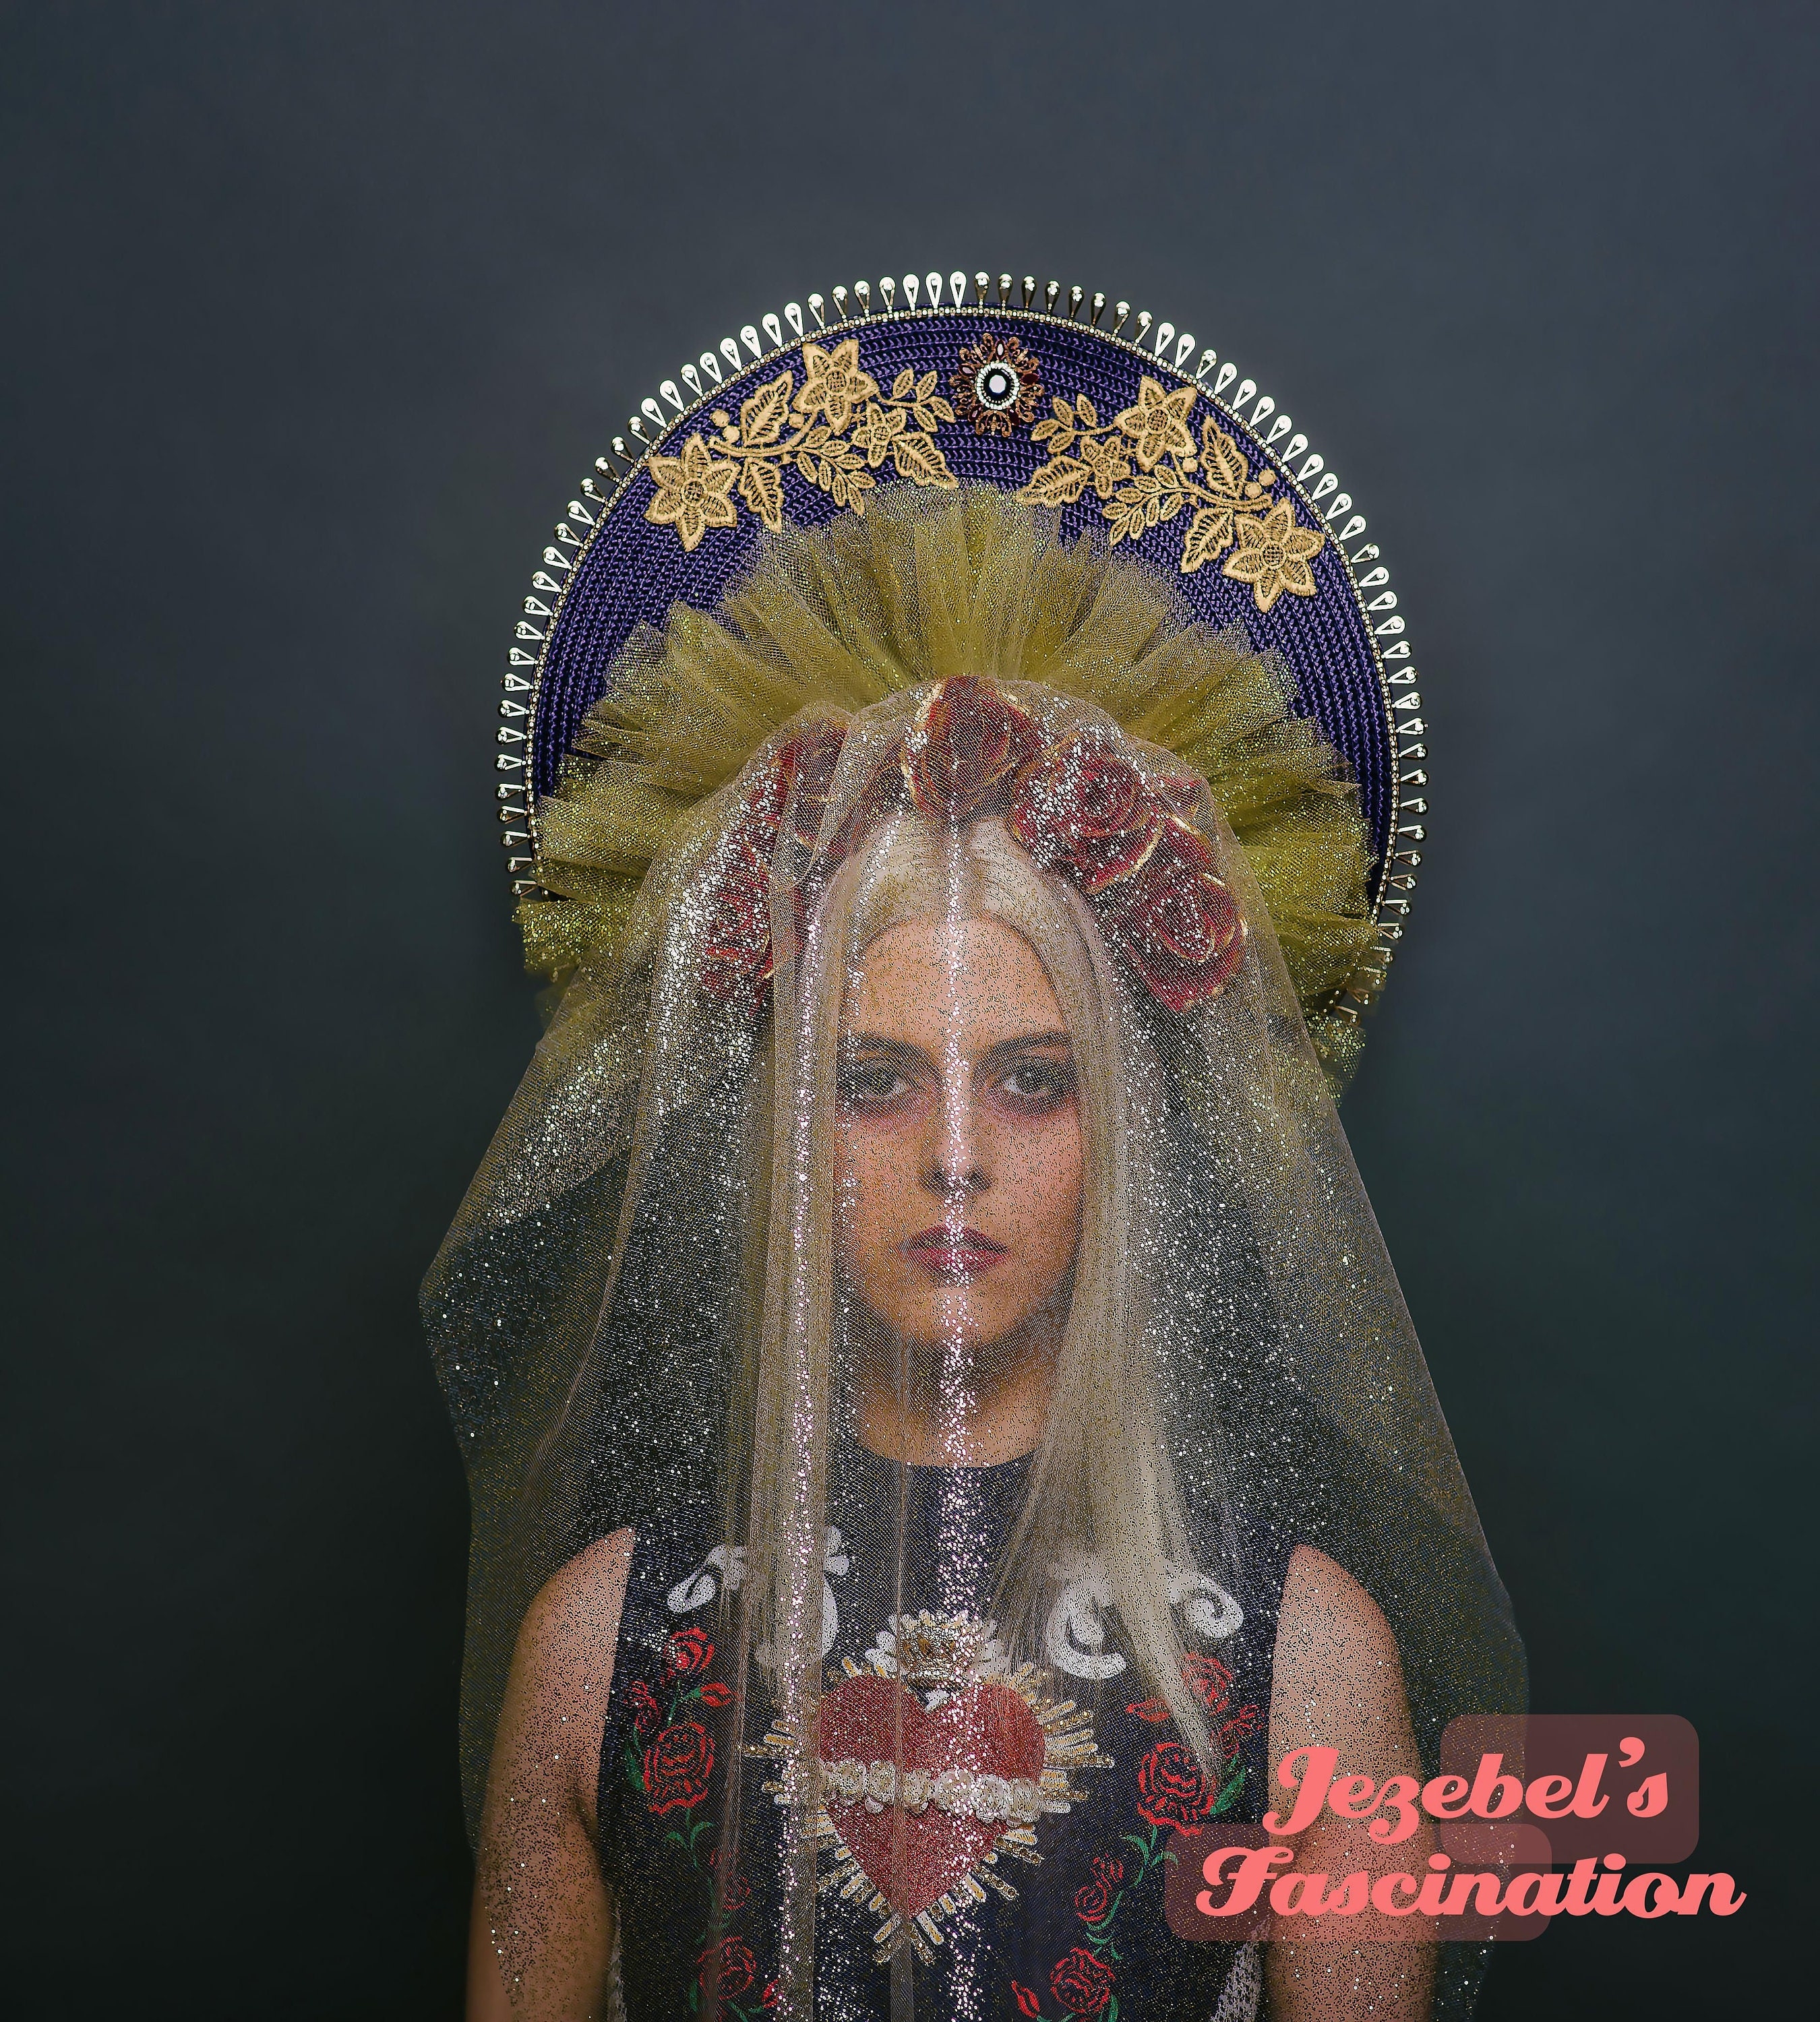 Navy Blue Red Gold Virgin Mary Halo Headdress Saint Top Veil Madonna Costume Floral Blessed Mother Head Piece Queen Rose Flower Crown  sc 1 st  Jezebelu0027s Fascination & Navy Blue Red Gold Virgin Mary Halo Headdress Saint Top Veil Madonna ...